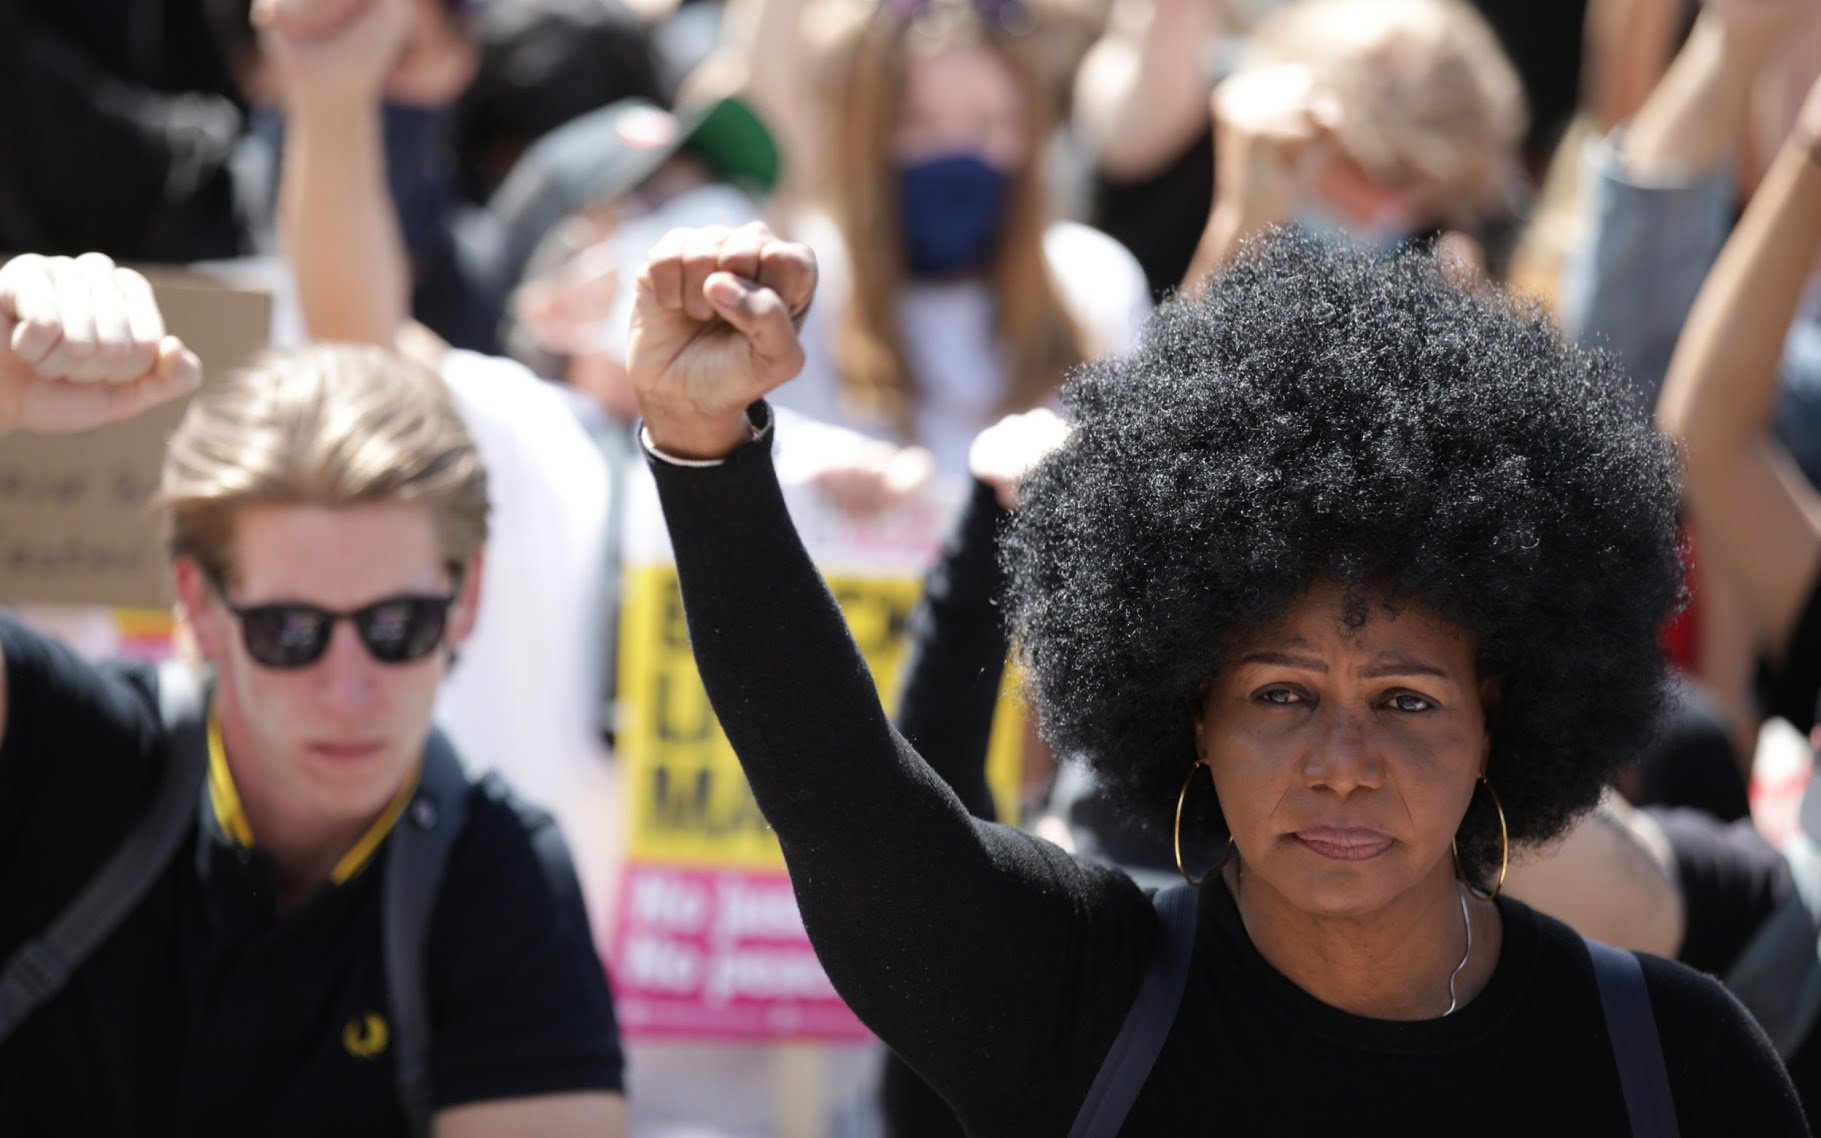 Keep going for Breonna Taylor – protest on Sat 11 July across the UK